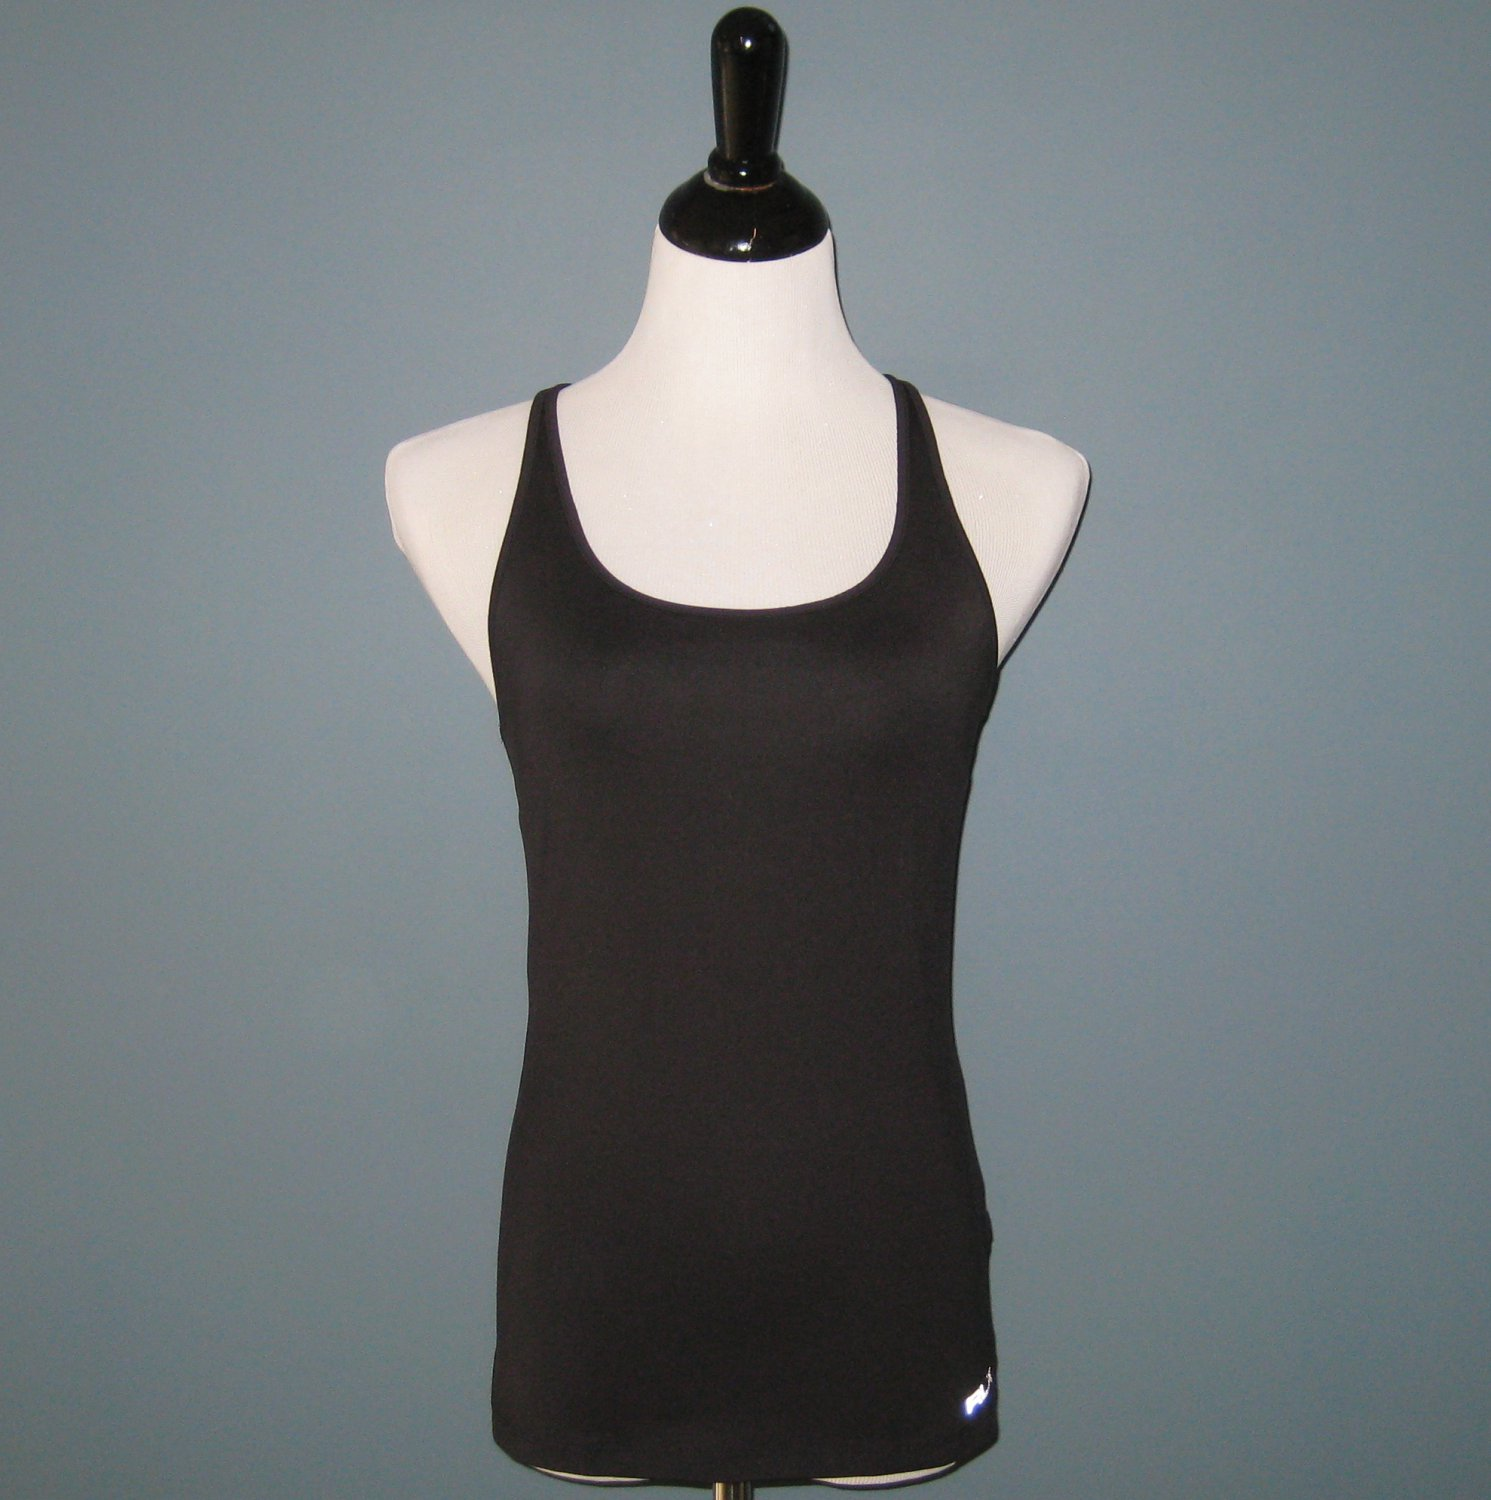 NWT Ralph Lauren RLX Black Racerback Athletic Wear Sport Top - S